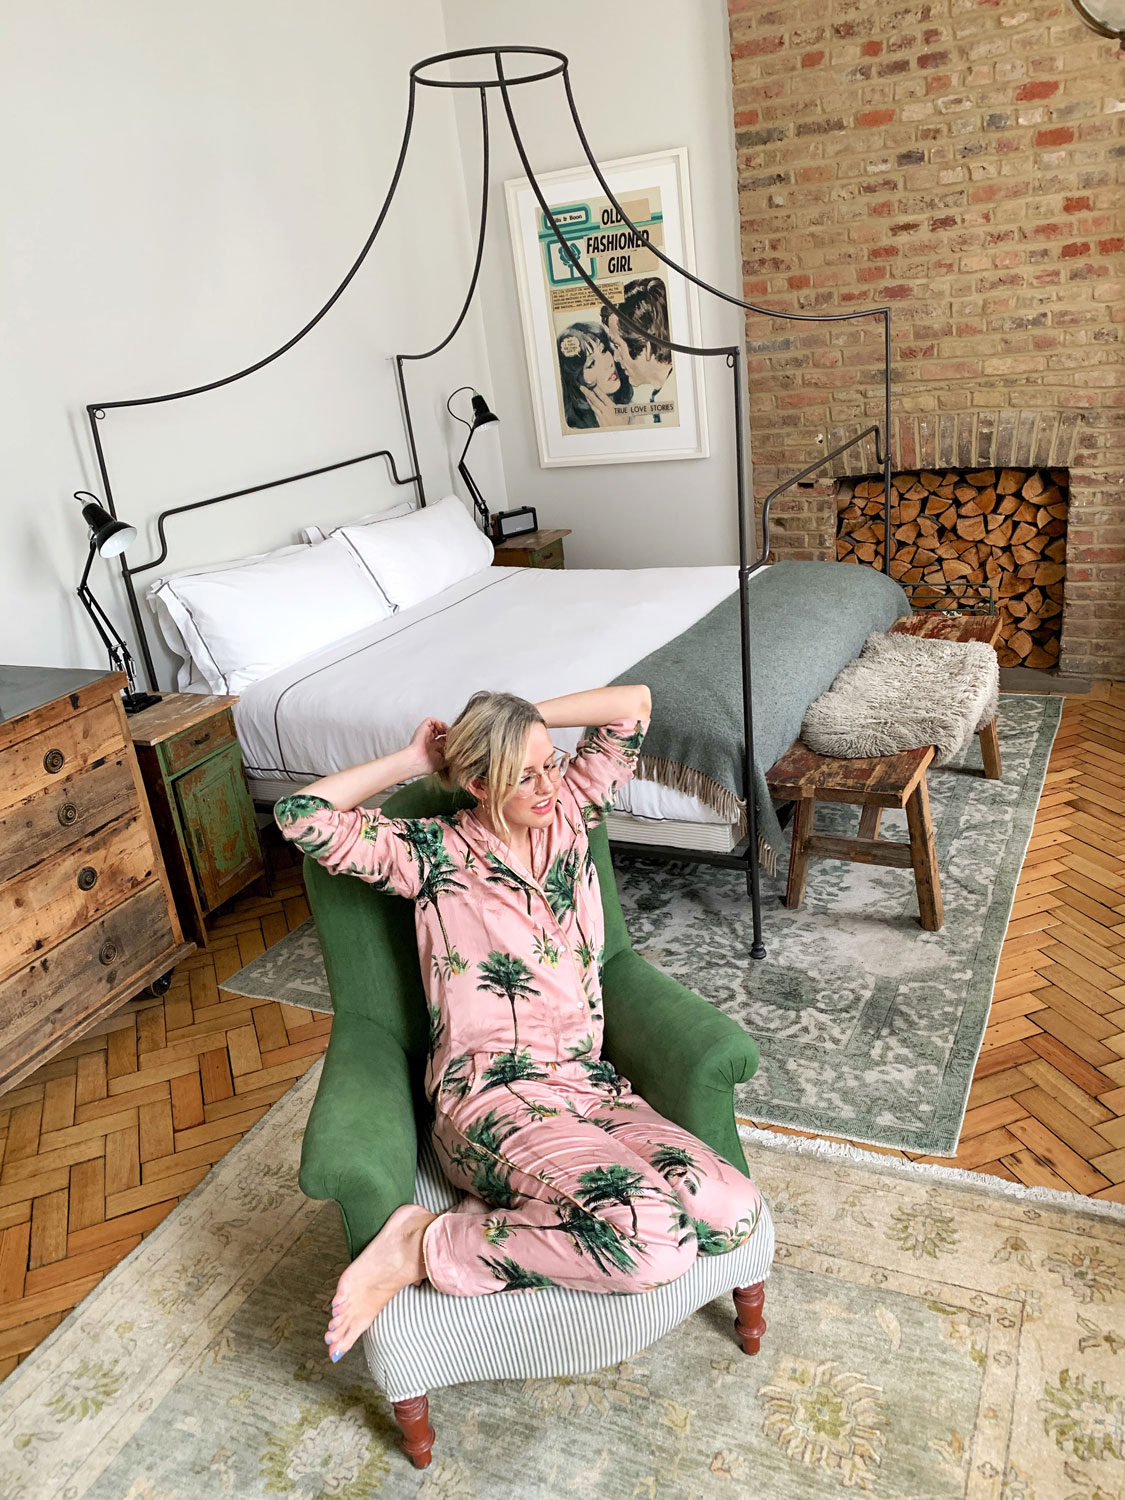 Alexandra Stedman relaxing in her Next pyjamas at The Artists Residence Pimlico.